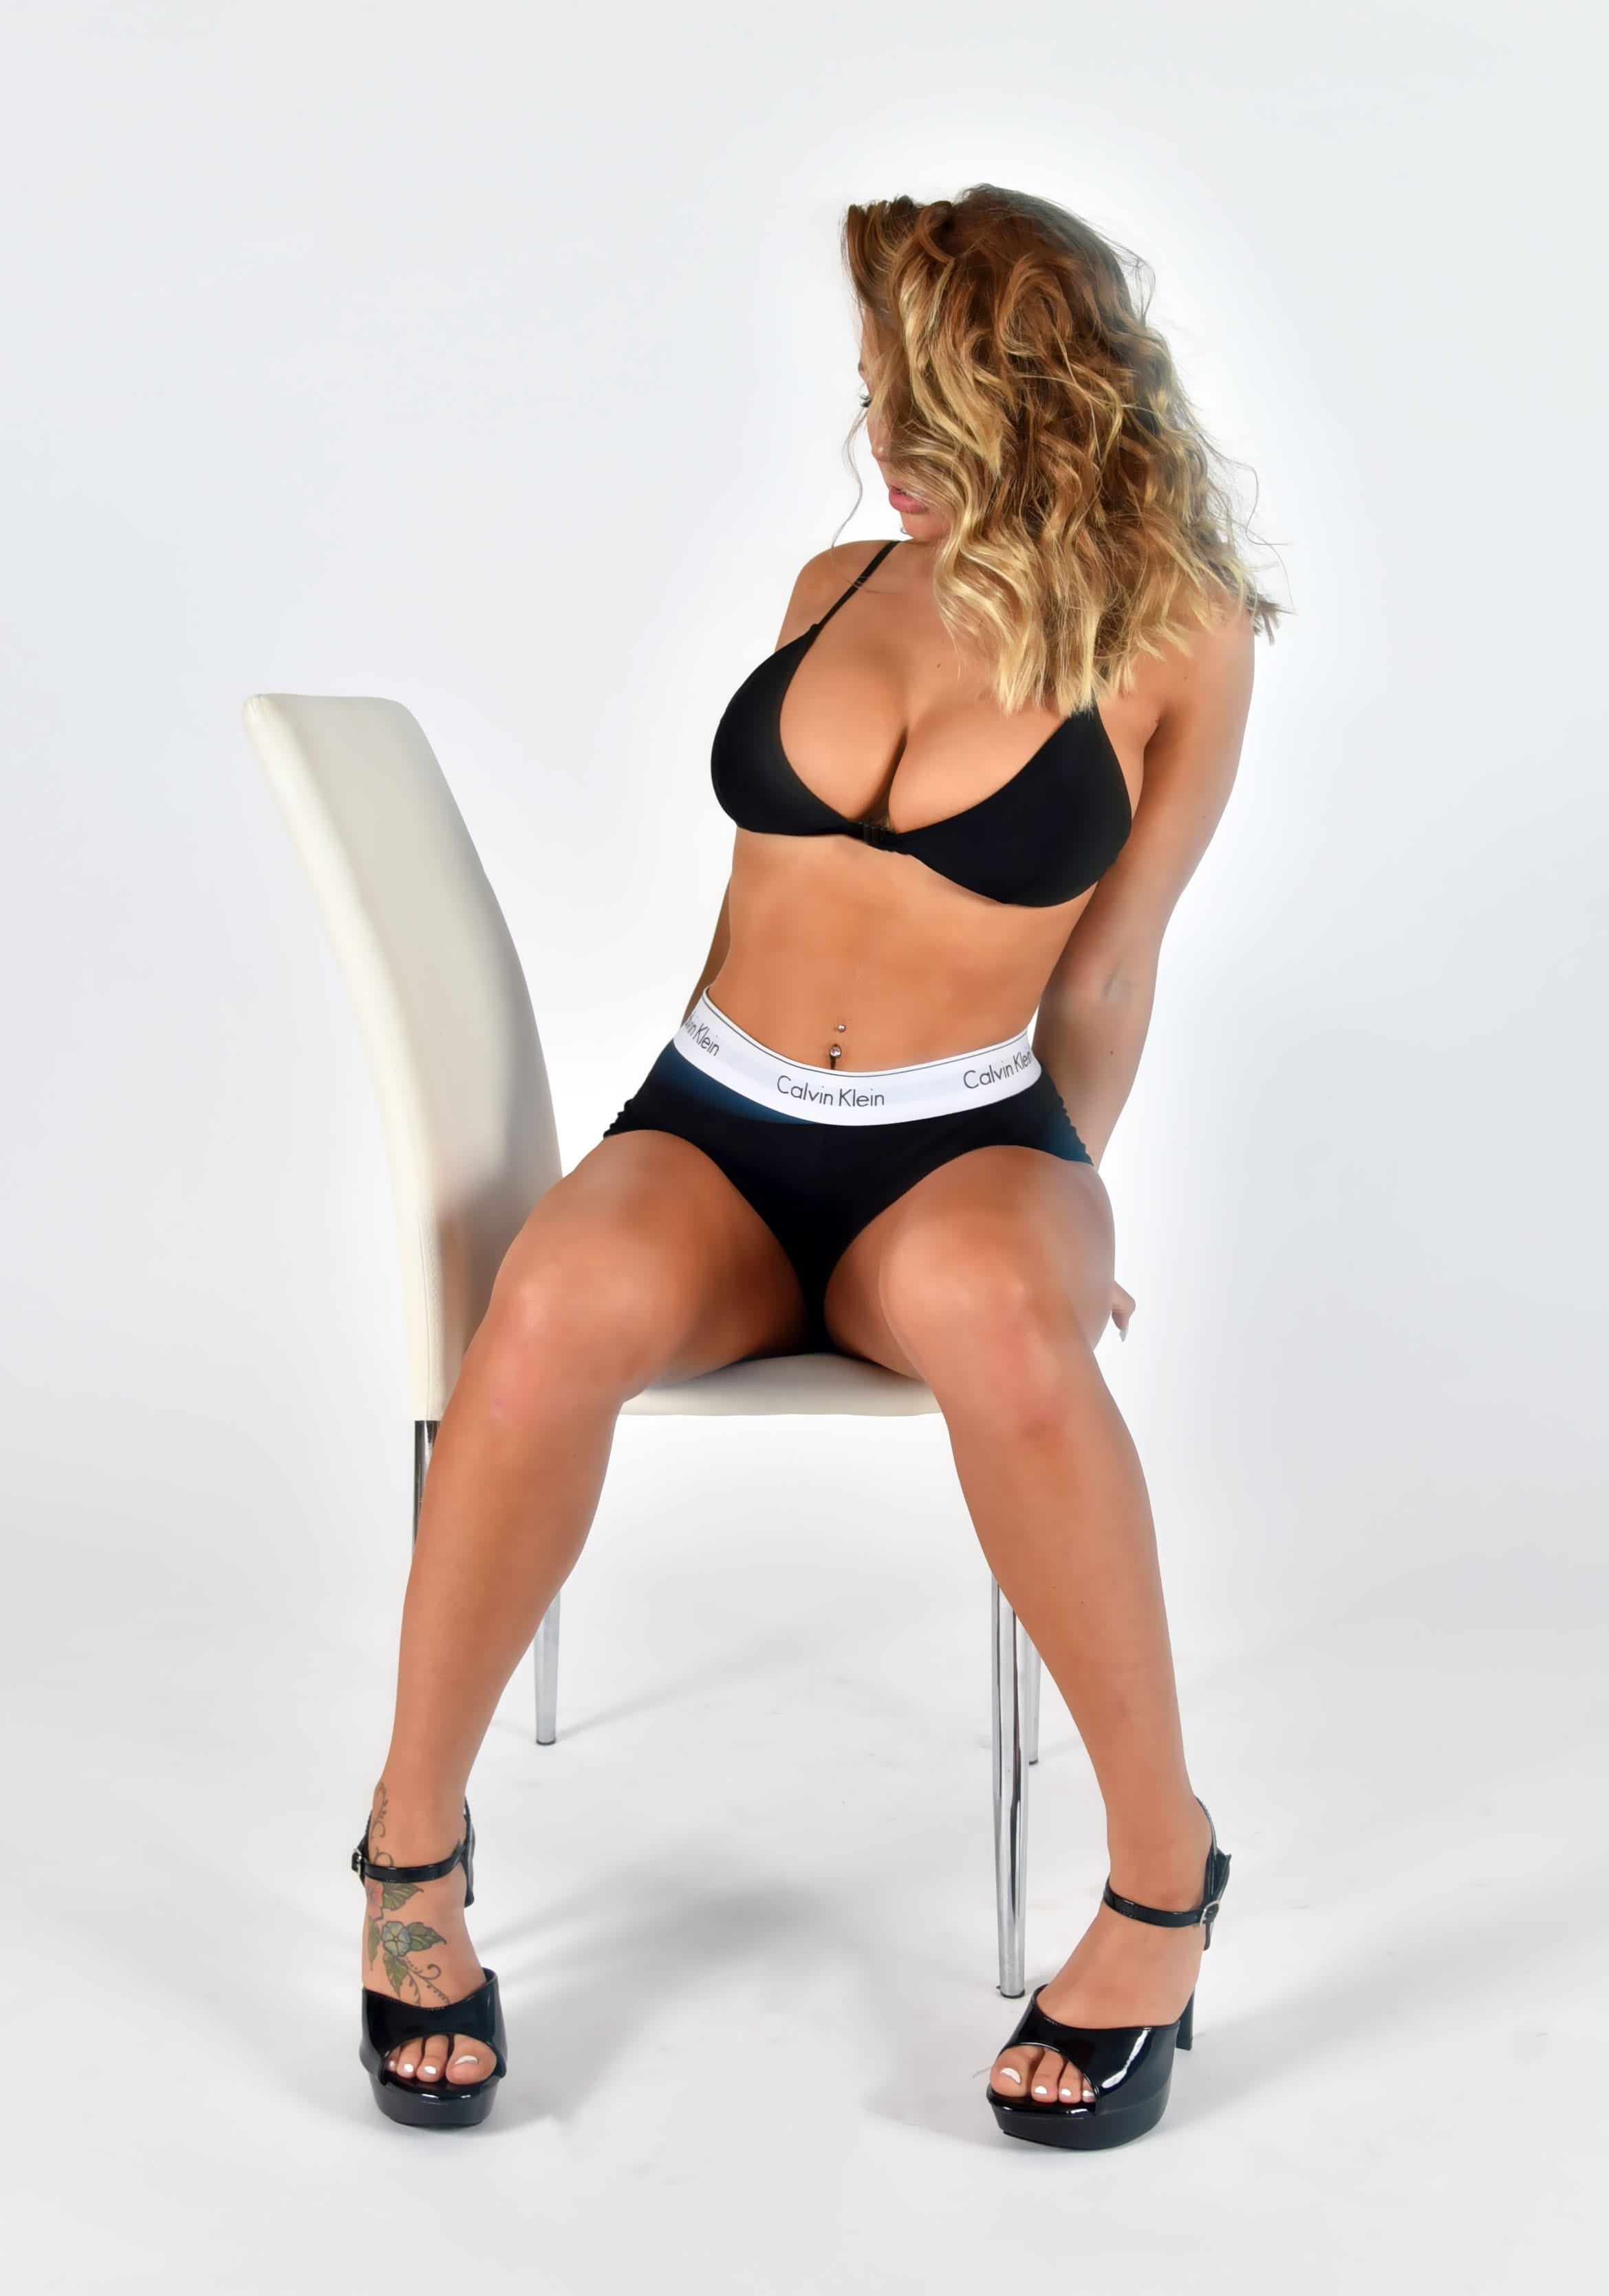 Private party strippers for hire